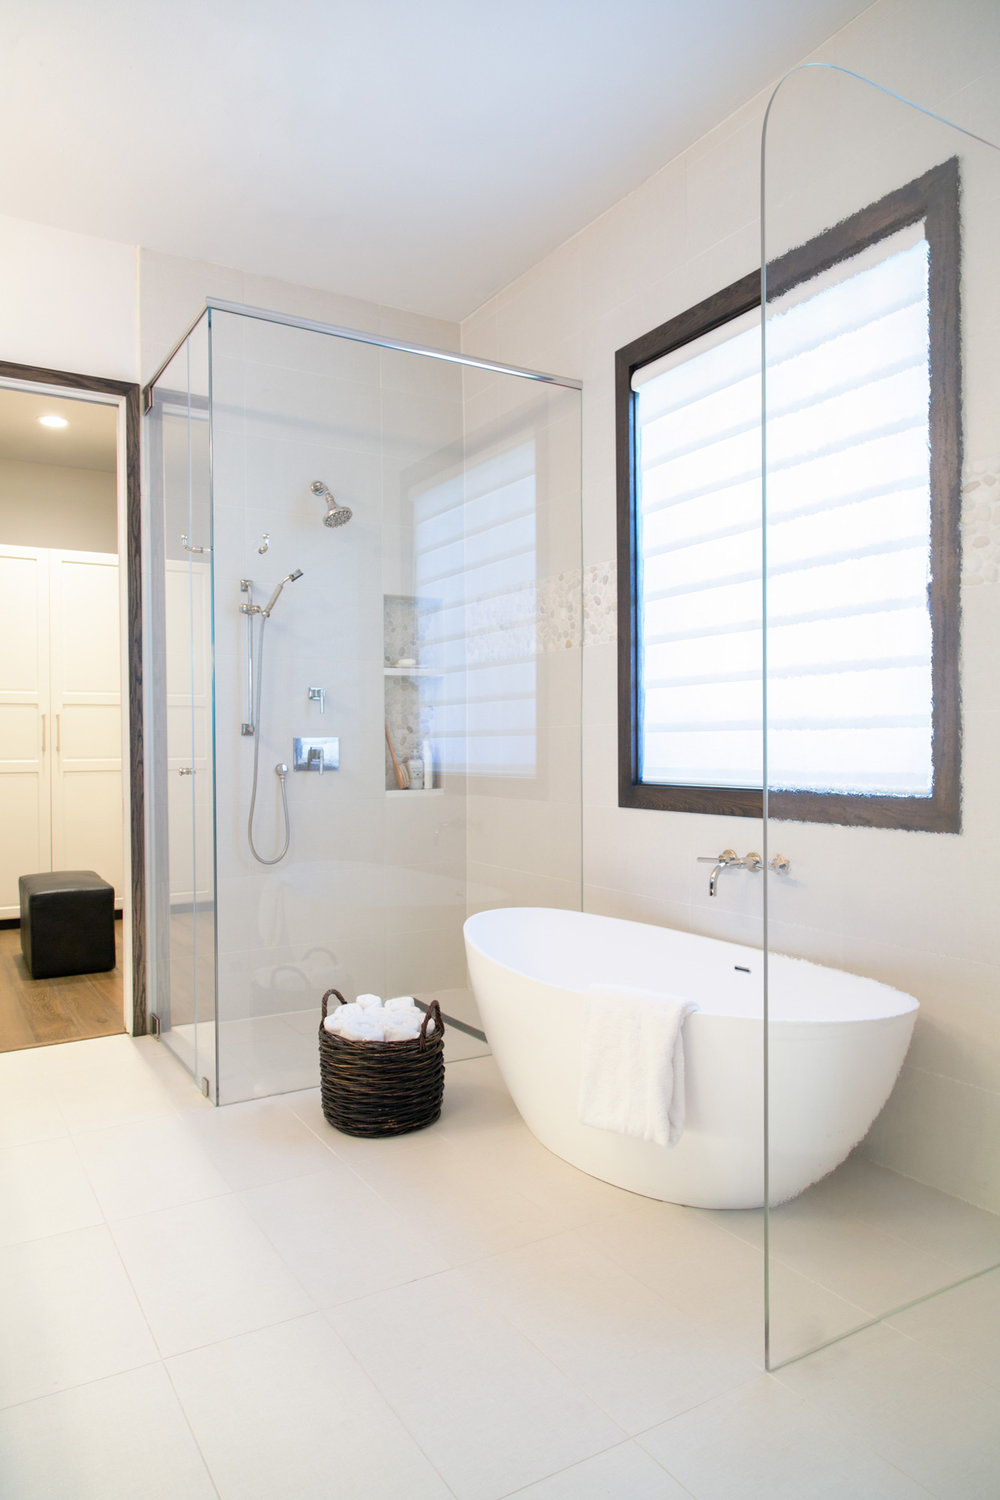 Tiled wall flows from behind tub into shower stall - Carla Aston Designer, Tori Aston Photographer